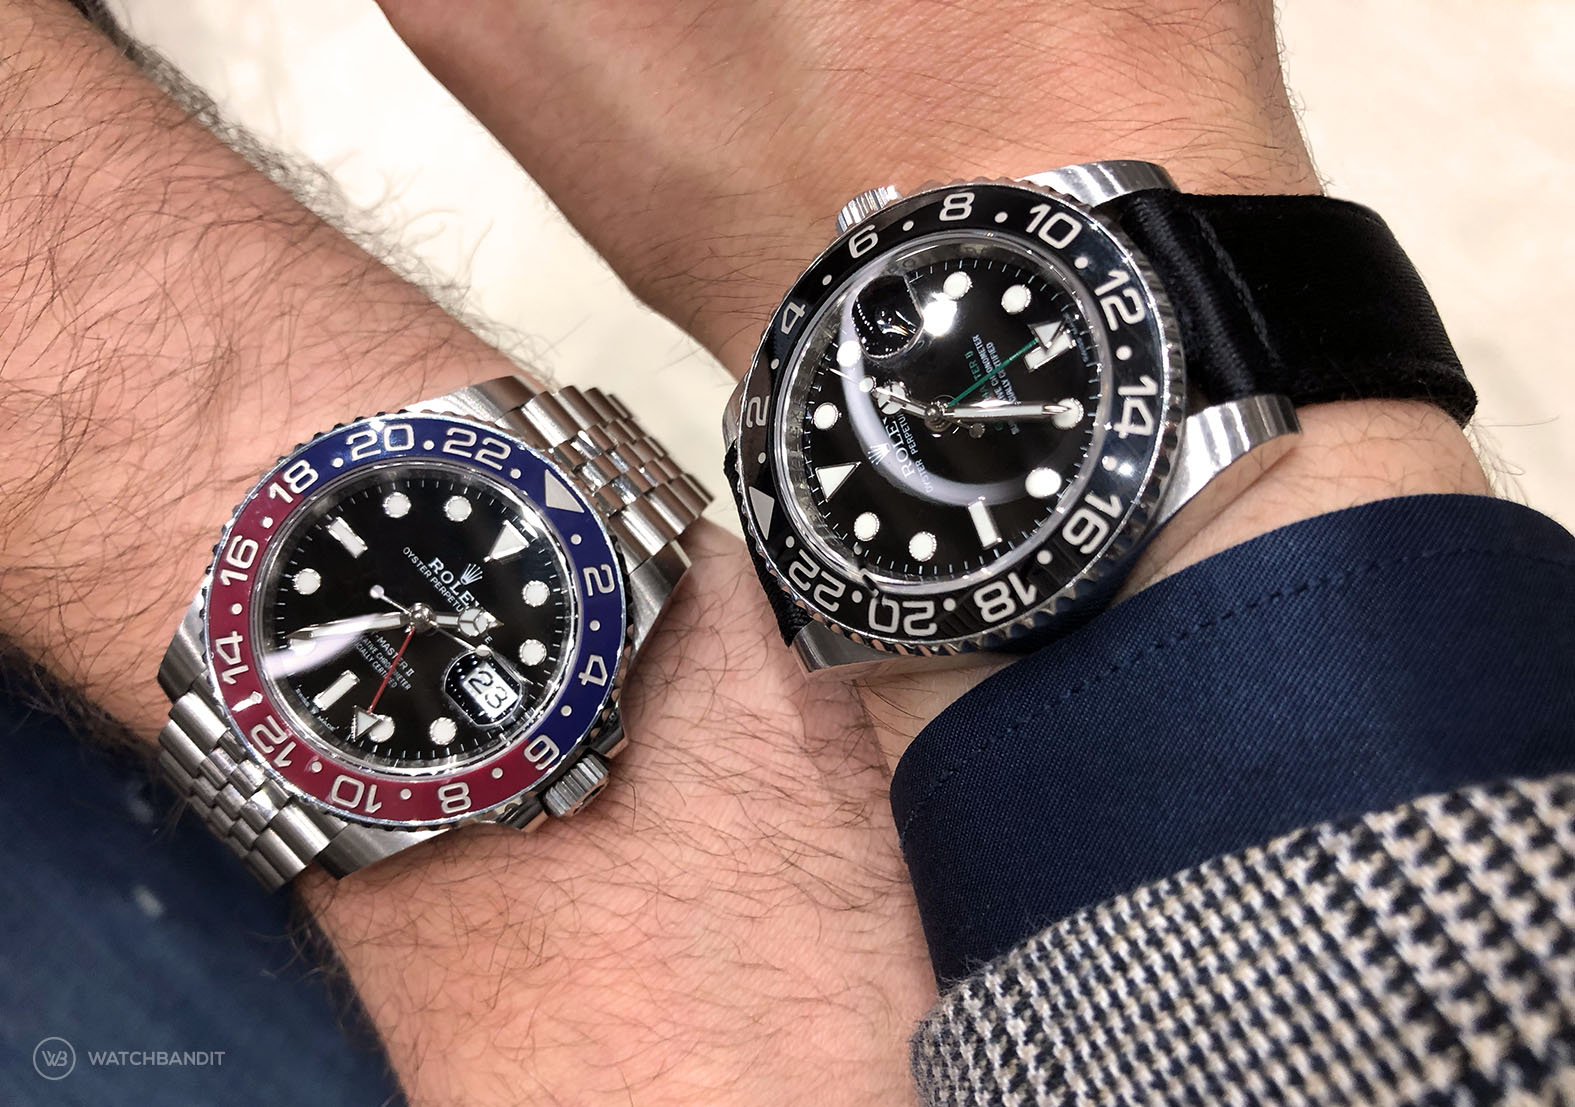 WatchBandit and Flomp89 Rolex GMT wristshot